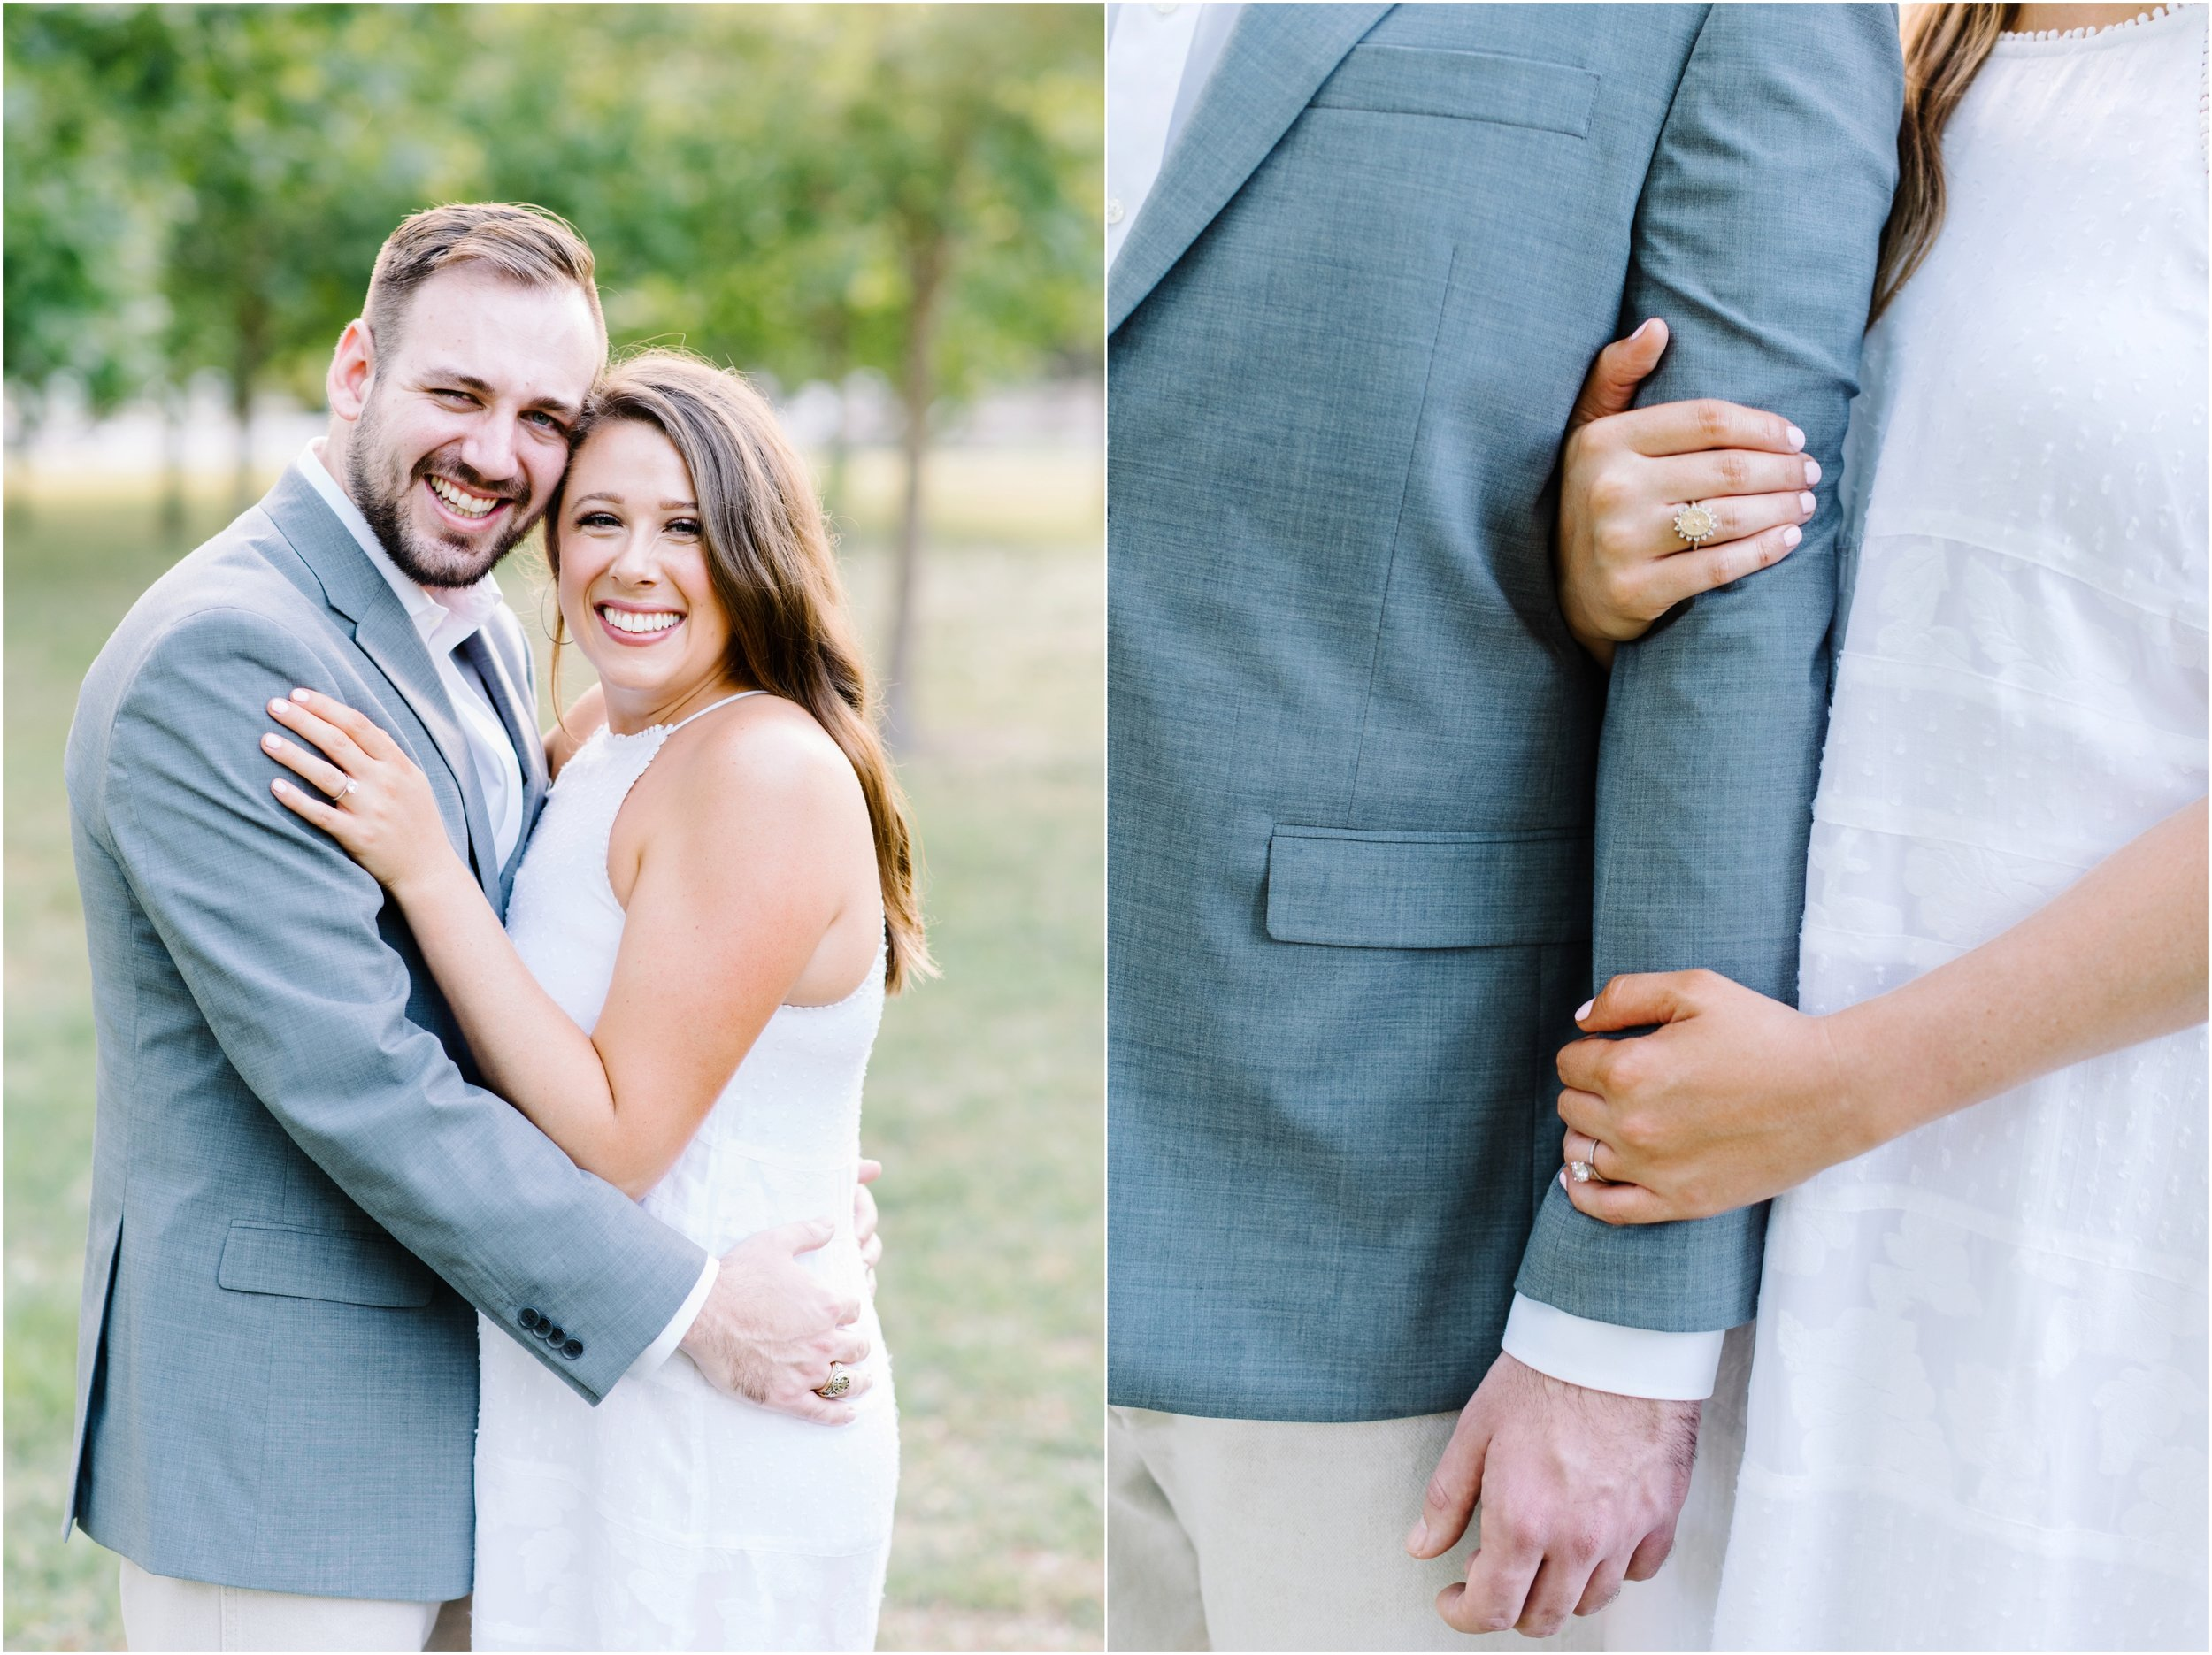 dallasweddingphotographer_texasweddingphotographer_mattandjulieweddings_modernfortworth_fortworthweddingphotographer_0889.jpg